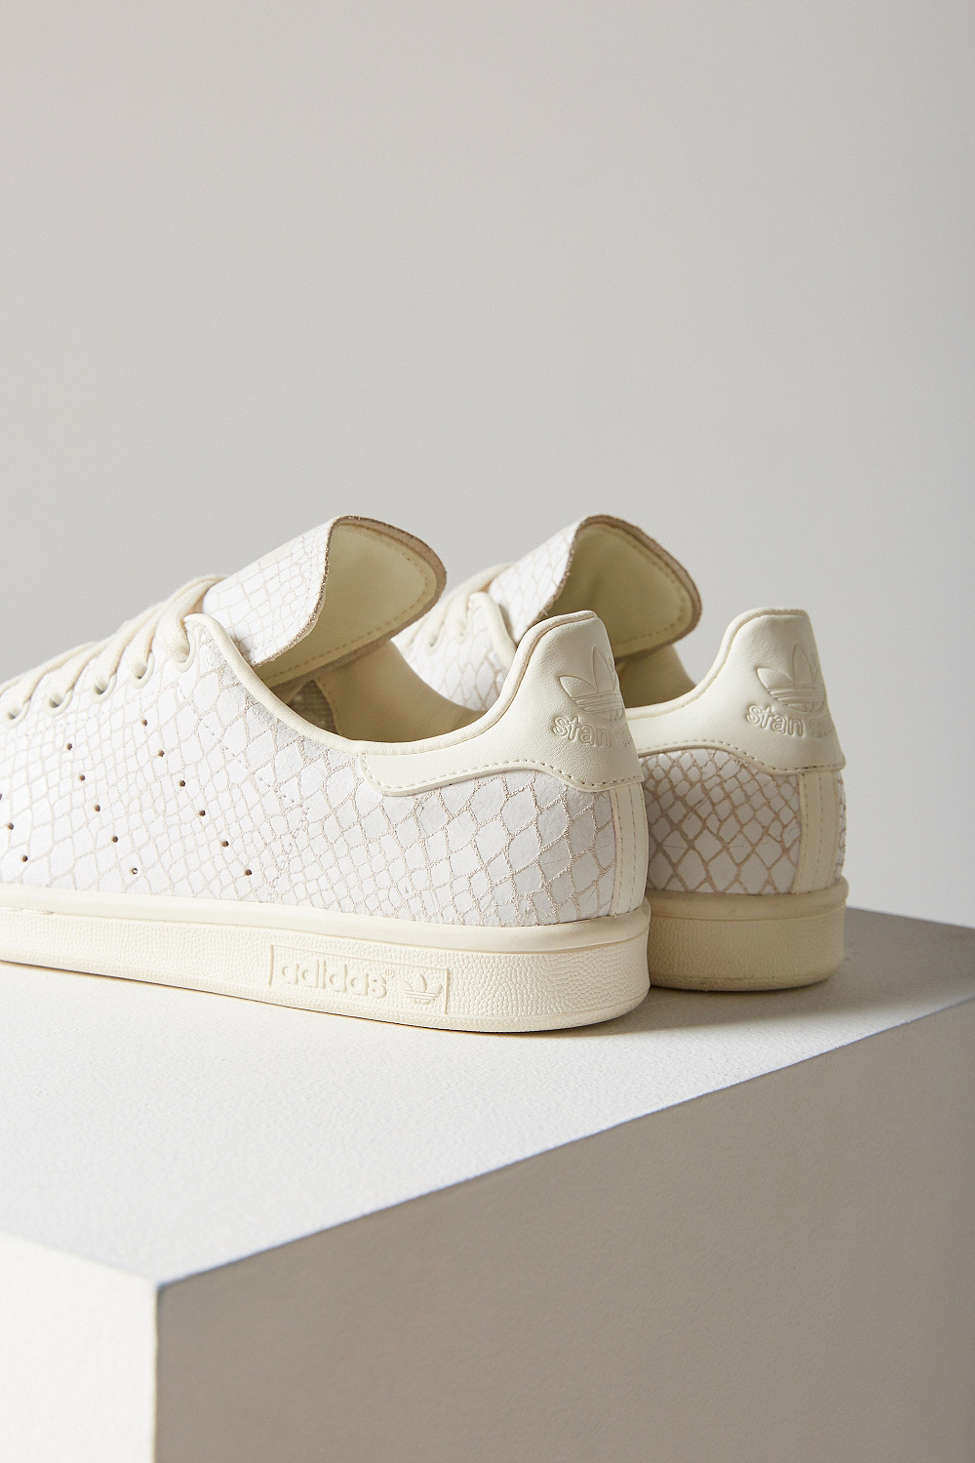 cheaper 5df2e 8e279 Adidas Originals White Stan Smith Croc-Embossed Leather Low-Top Sneakers